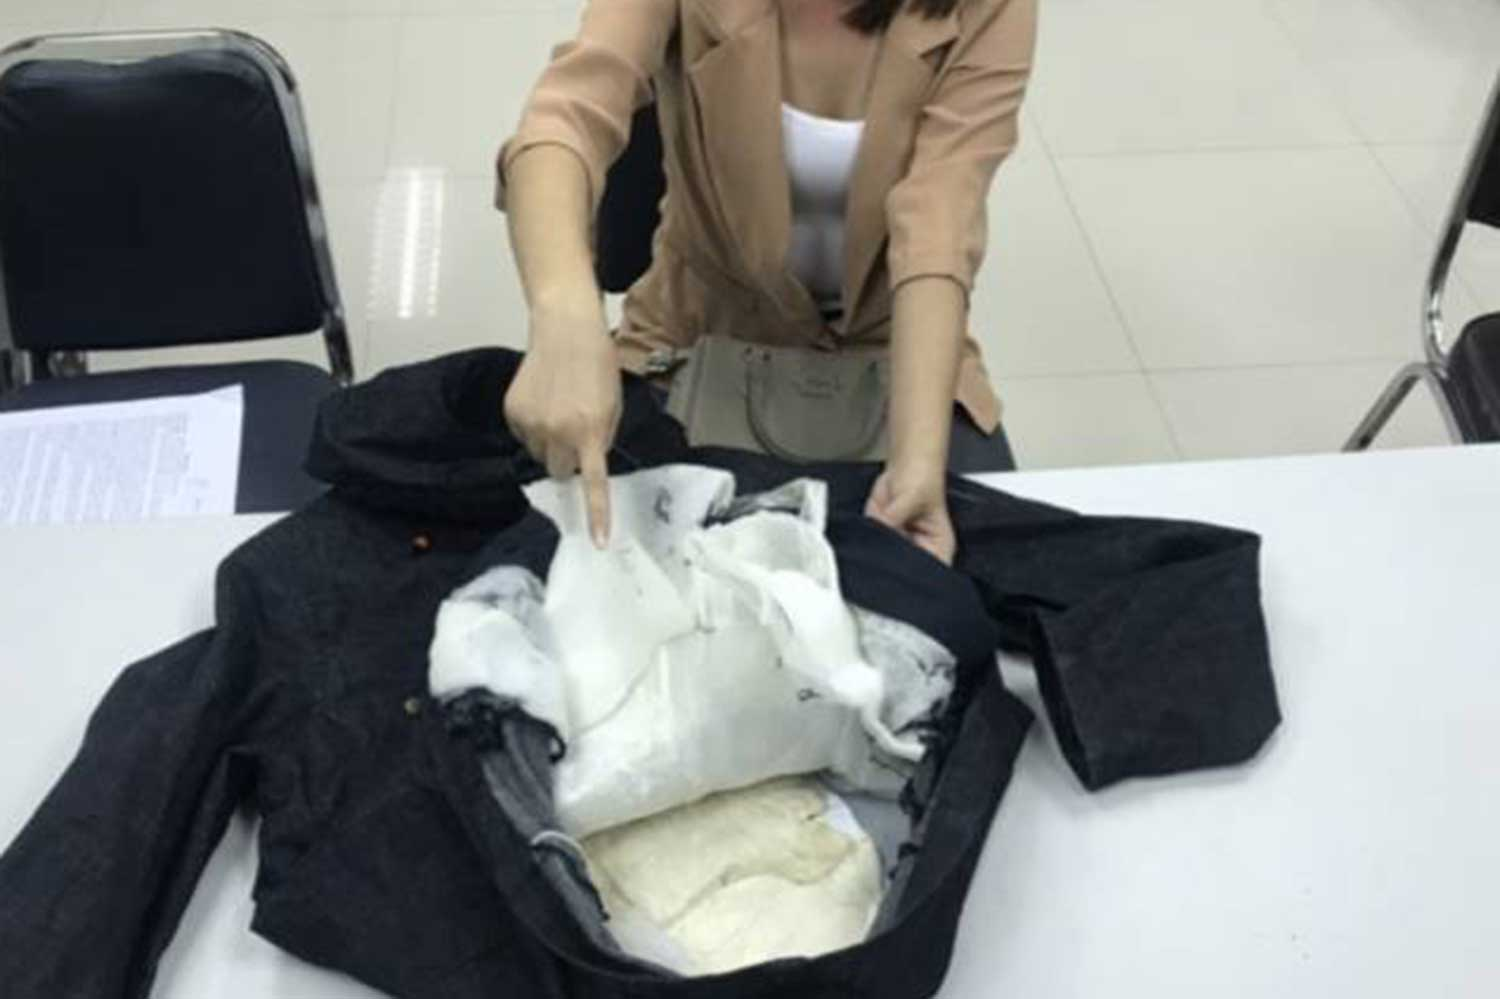 A Myanmar woman arrested by the police at a hotel room points at drugs during a media briefing. (Supplied photo)